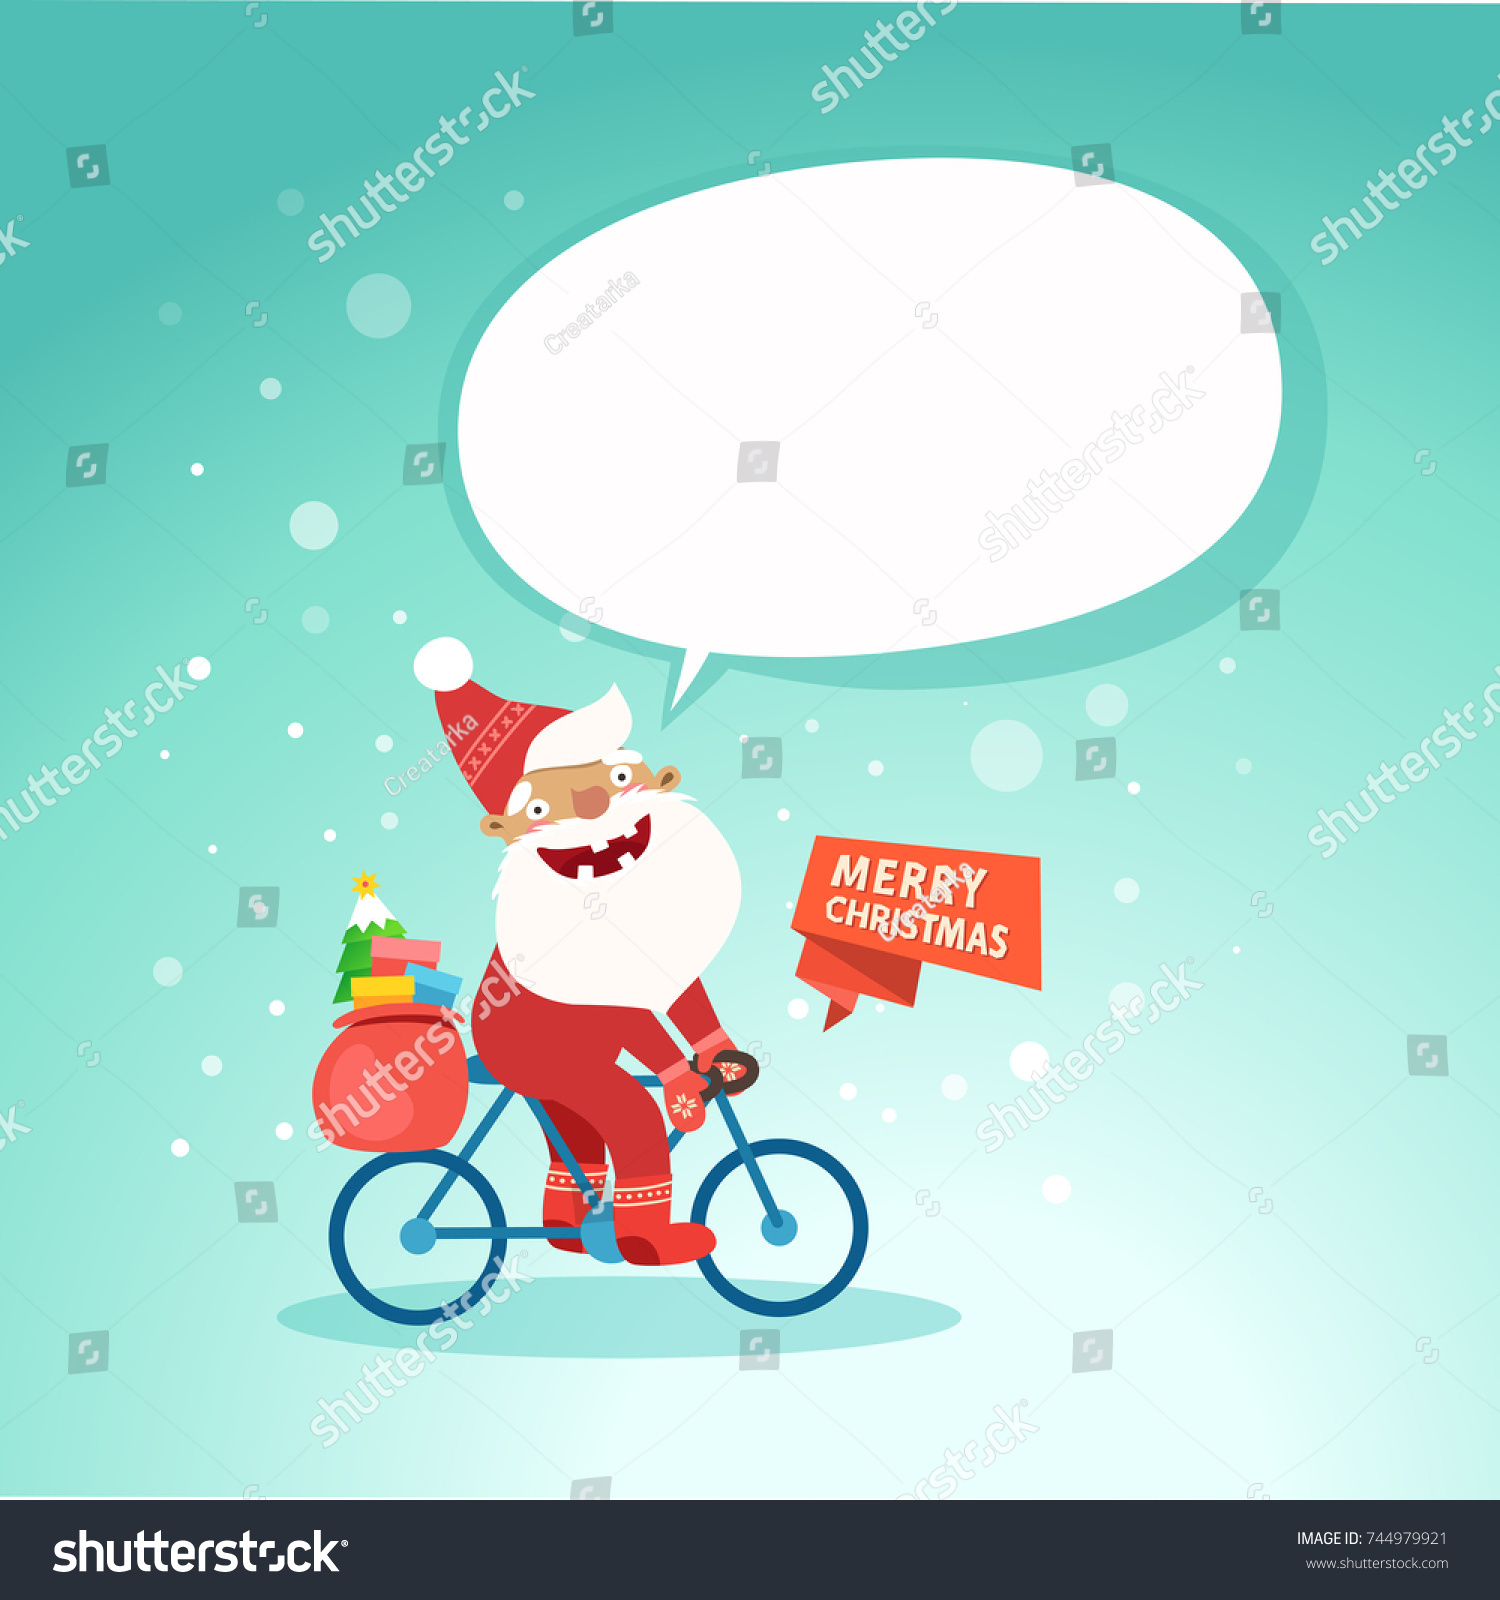 Merry Christmas Cute Santa Claus On Stock Vector (Royalty Free ...